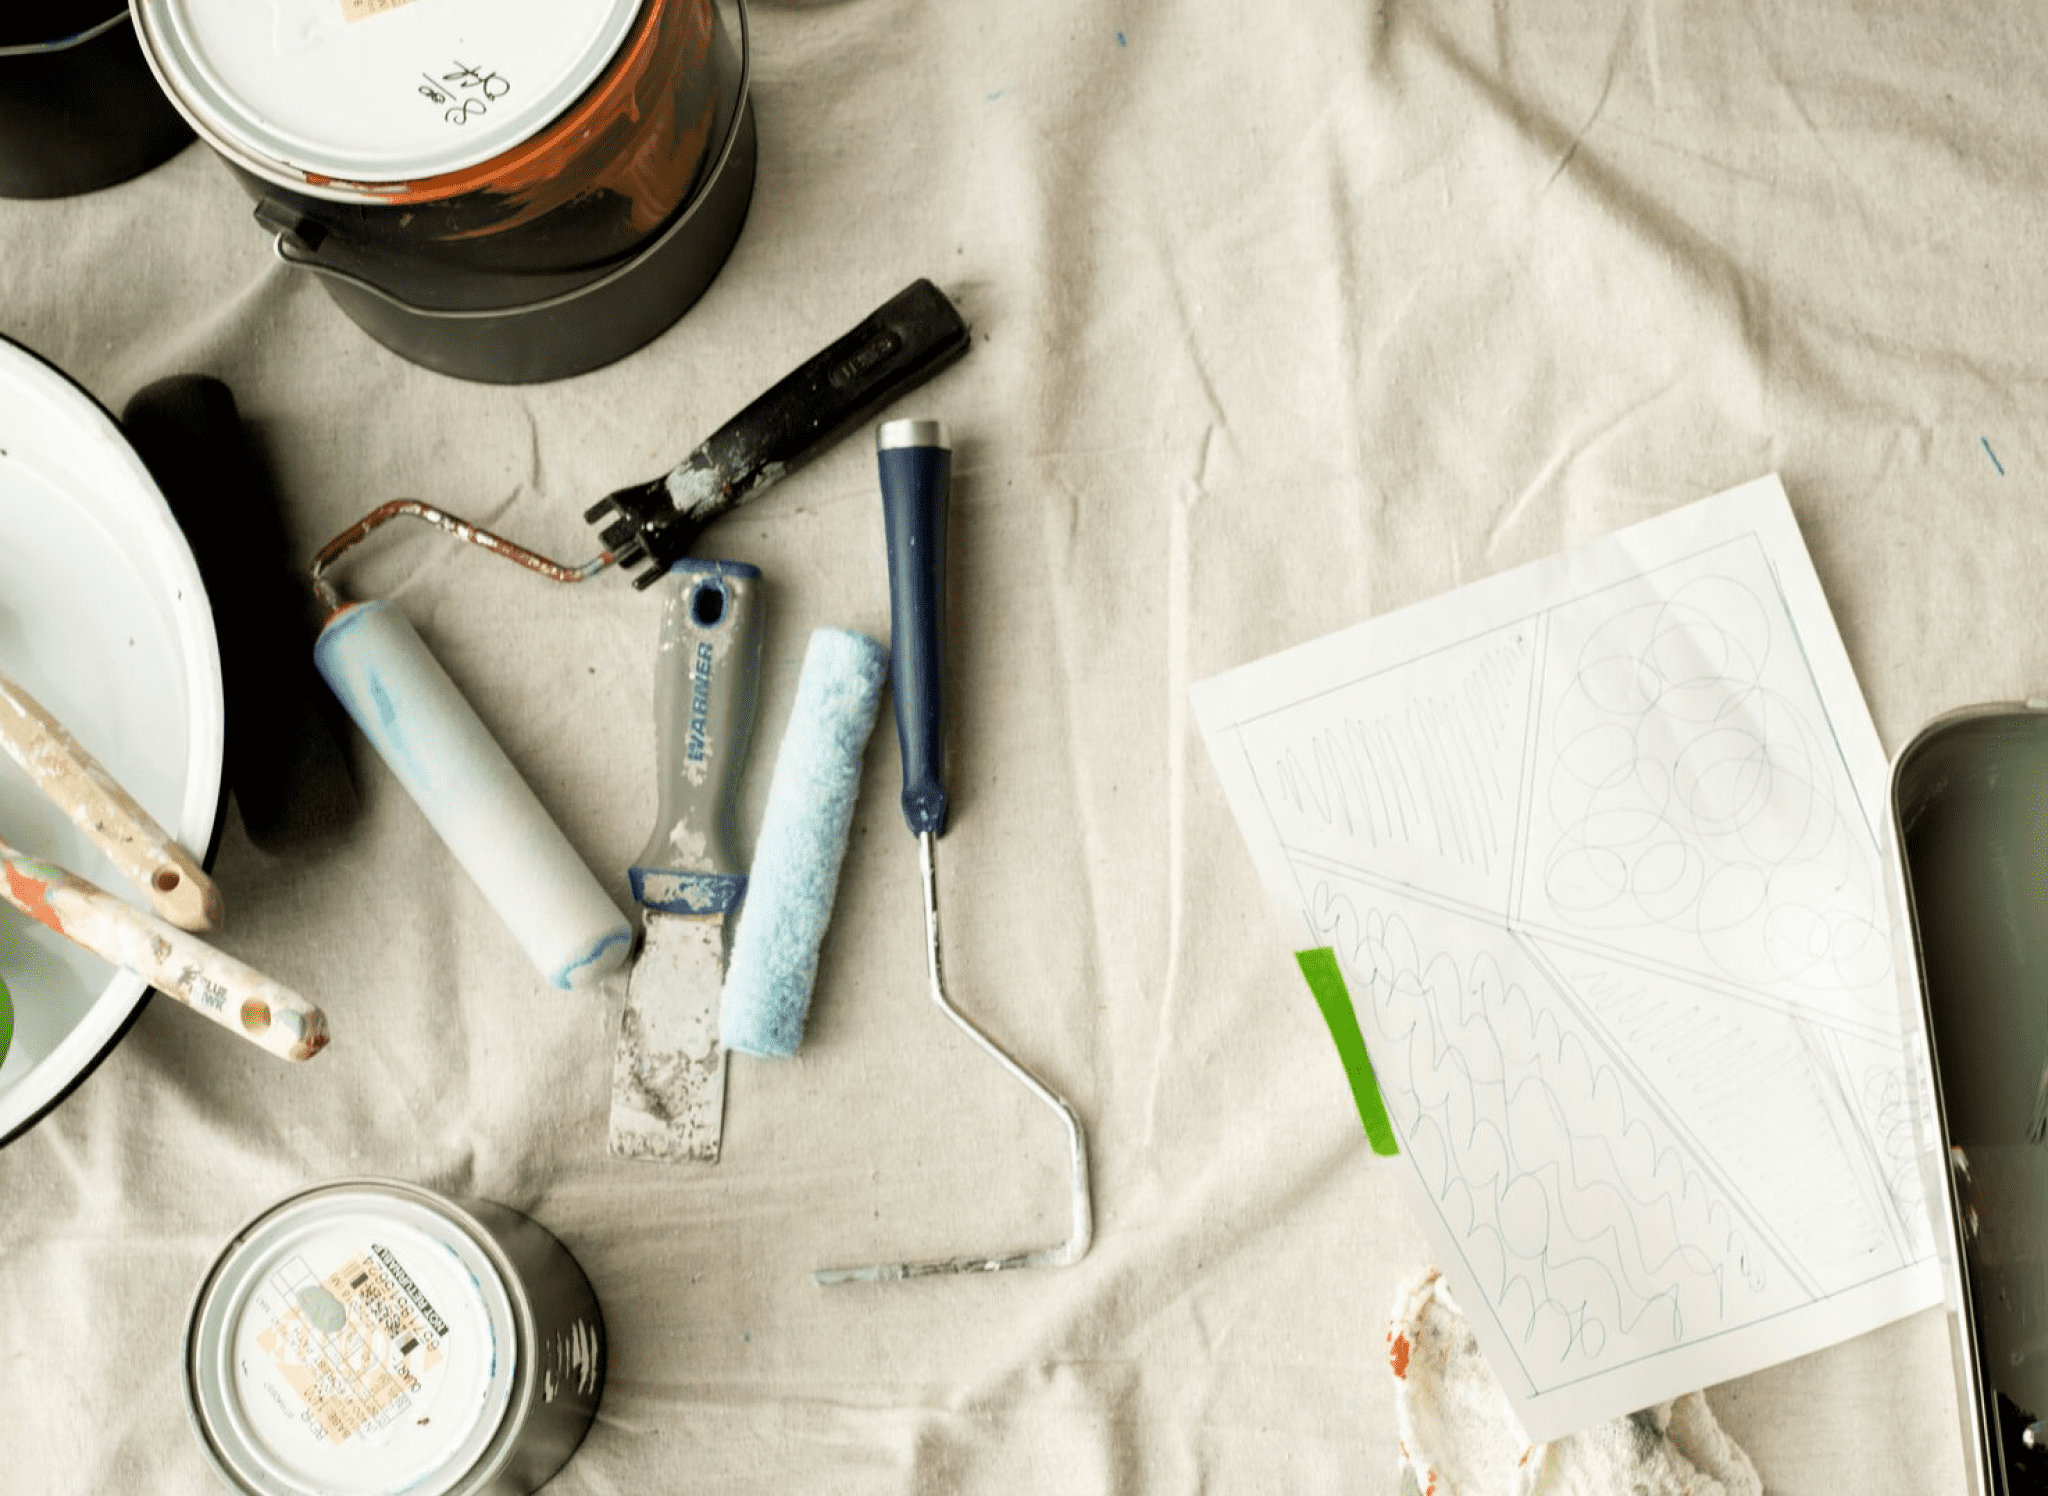 painting supplies and tools